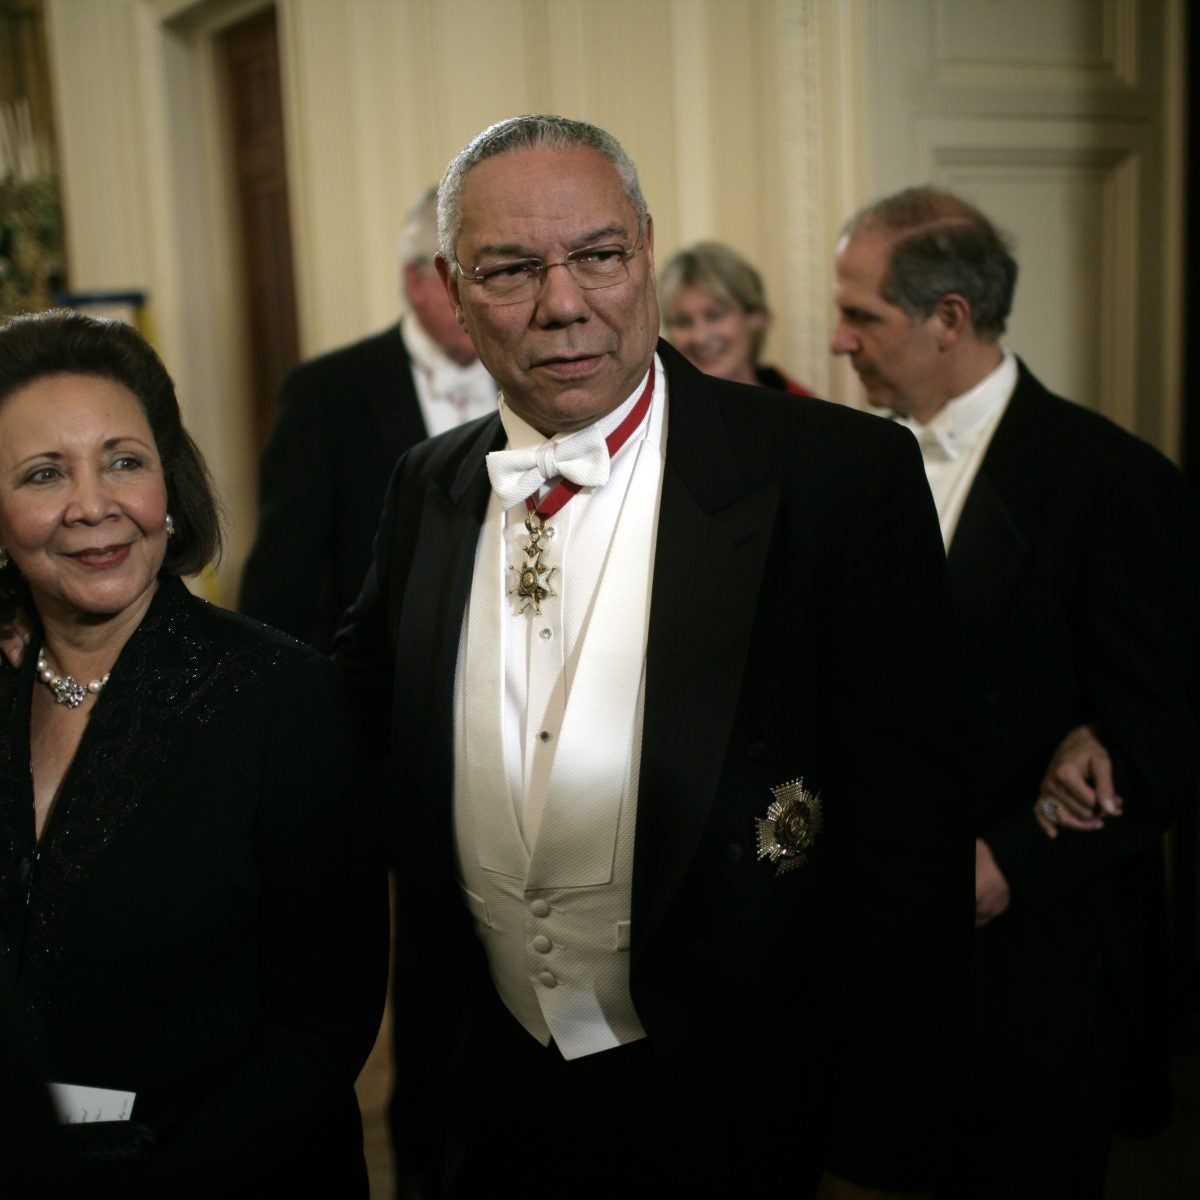 Photos Of Colin Powell And Wife Alma From Their Nearly 60 Years Of Marriage